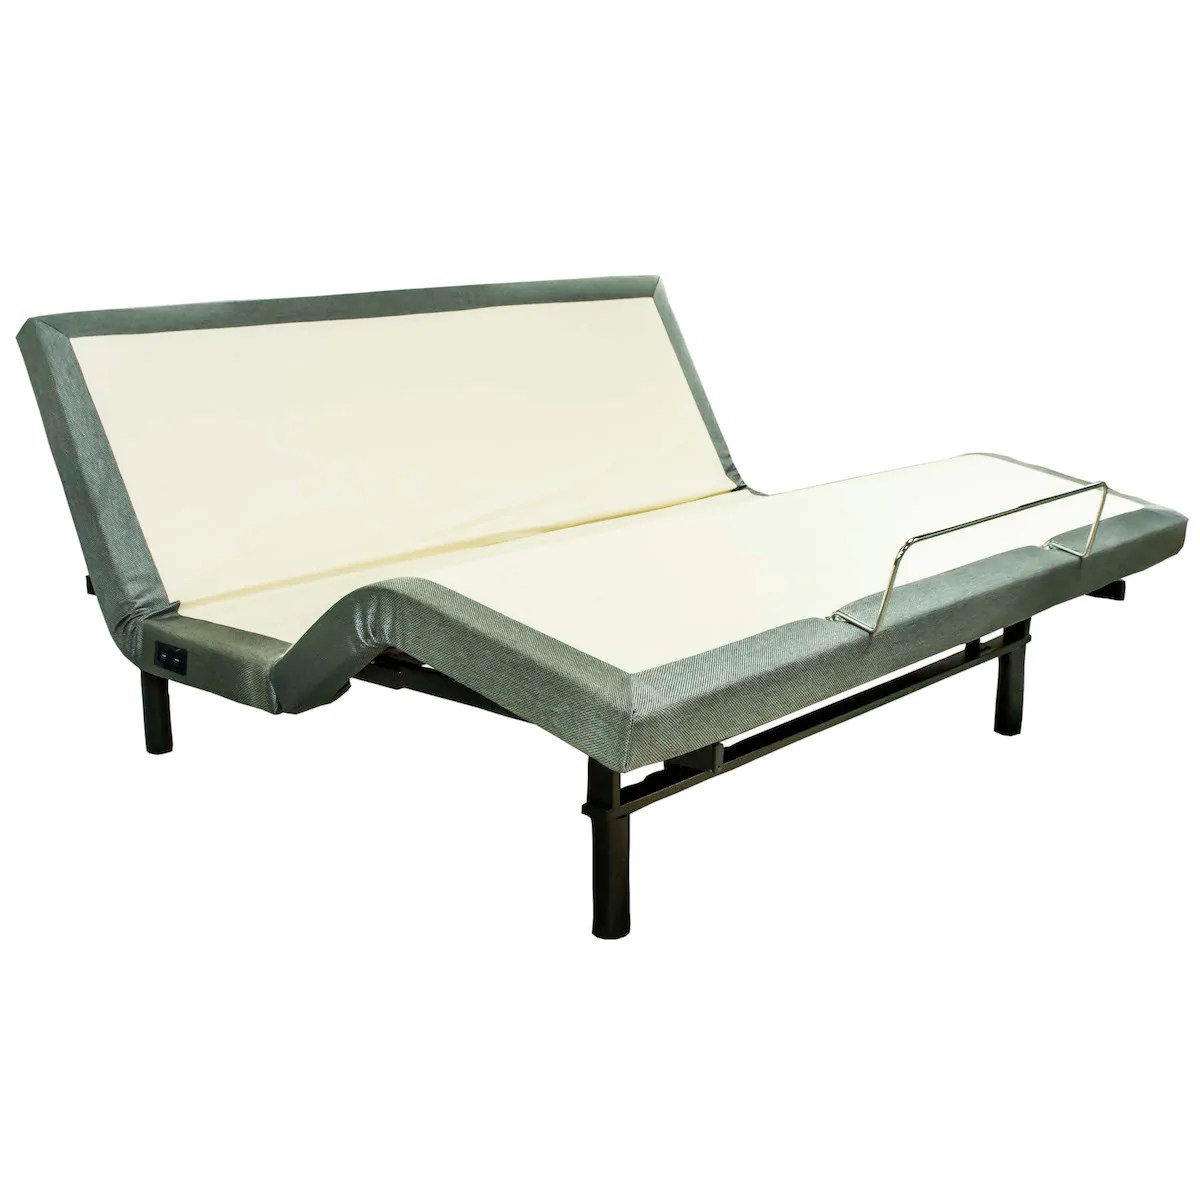 Futon Massage King Adjustable Bed With Light And Massage By W Silver Products